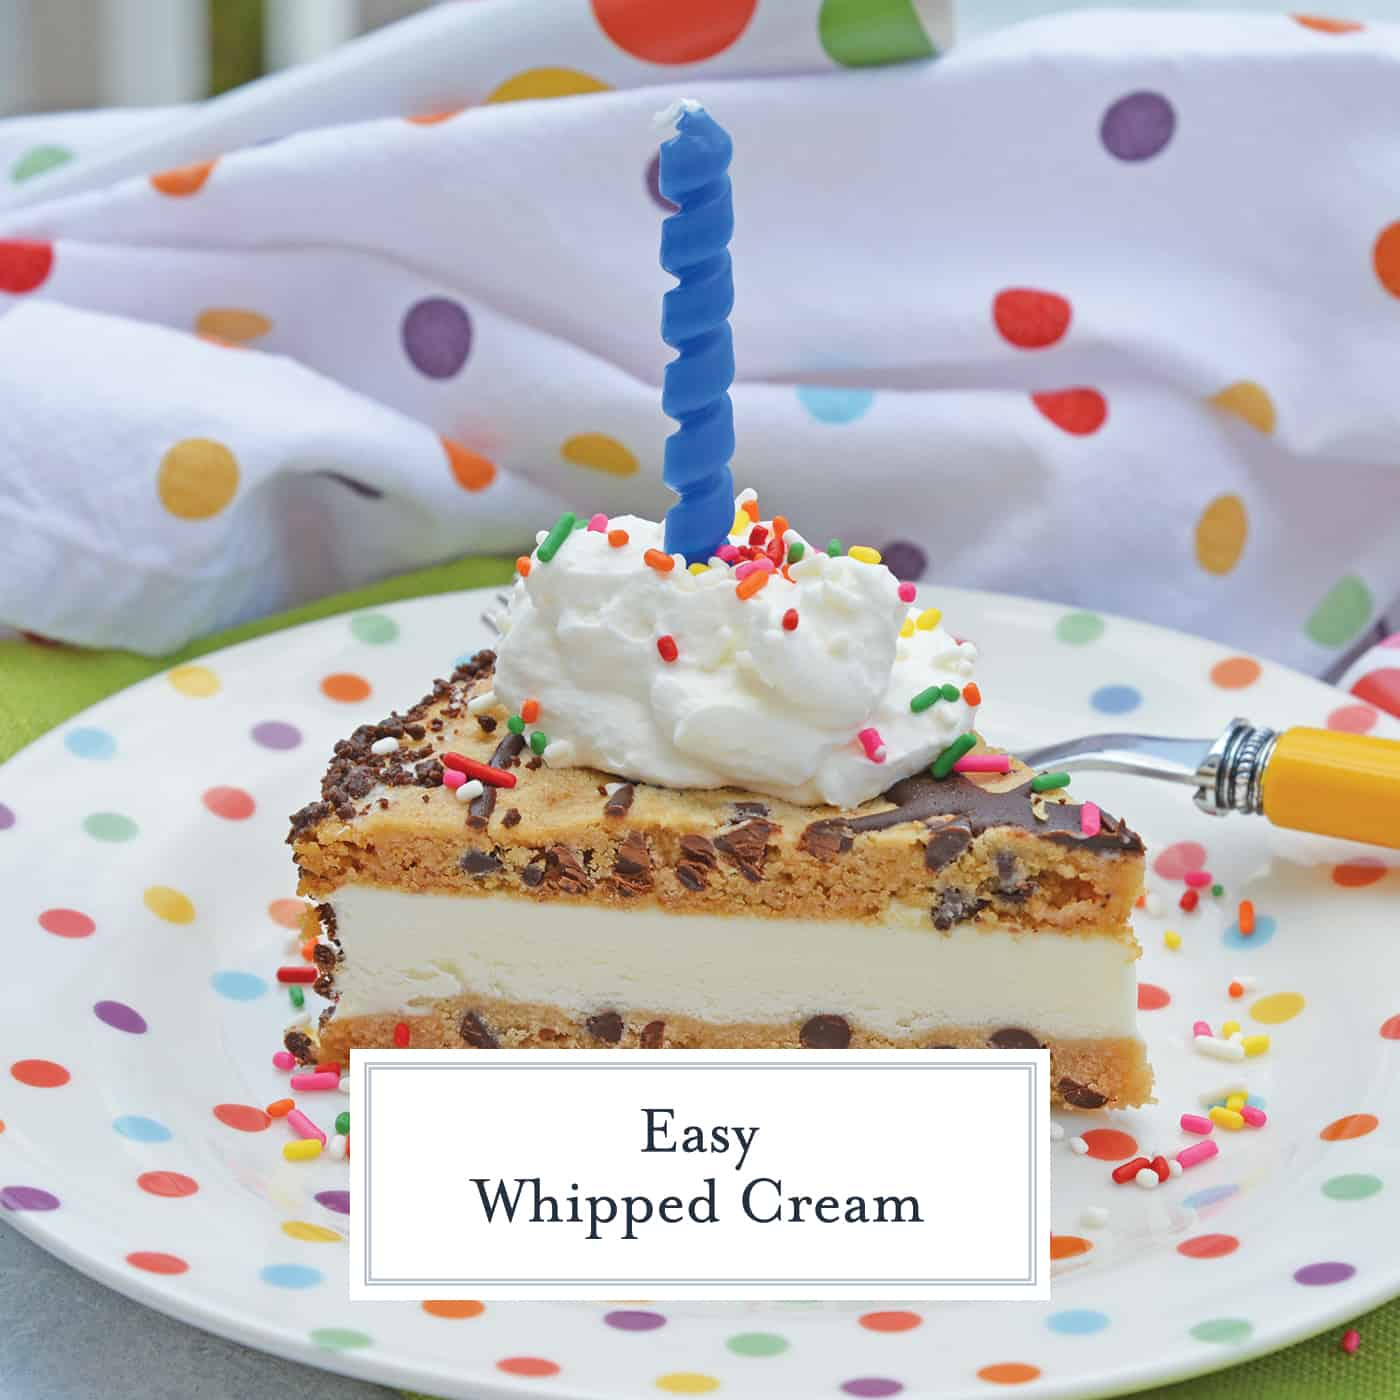 Easy Whipped Cream is a 3-ingredient recipe for whipped cream from scratch. Perfect for topping ice cream cake and other desserts! #homemadewhippedcream #whippedcreamfromscratch www.savoryexperiments.com